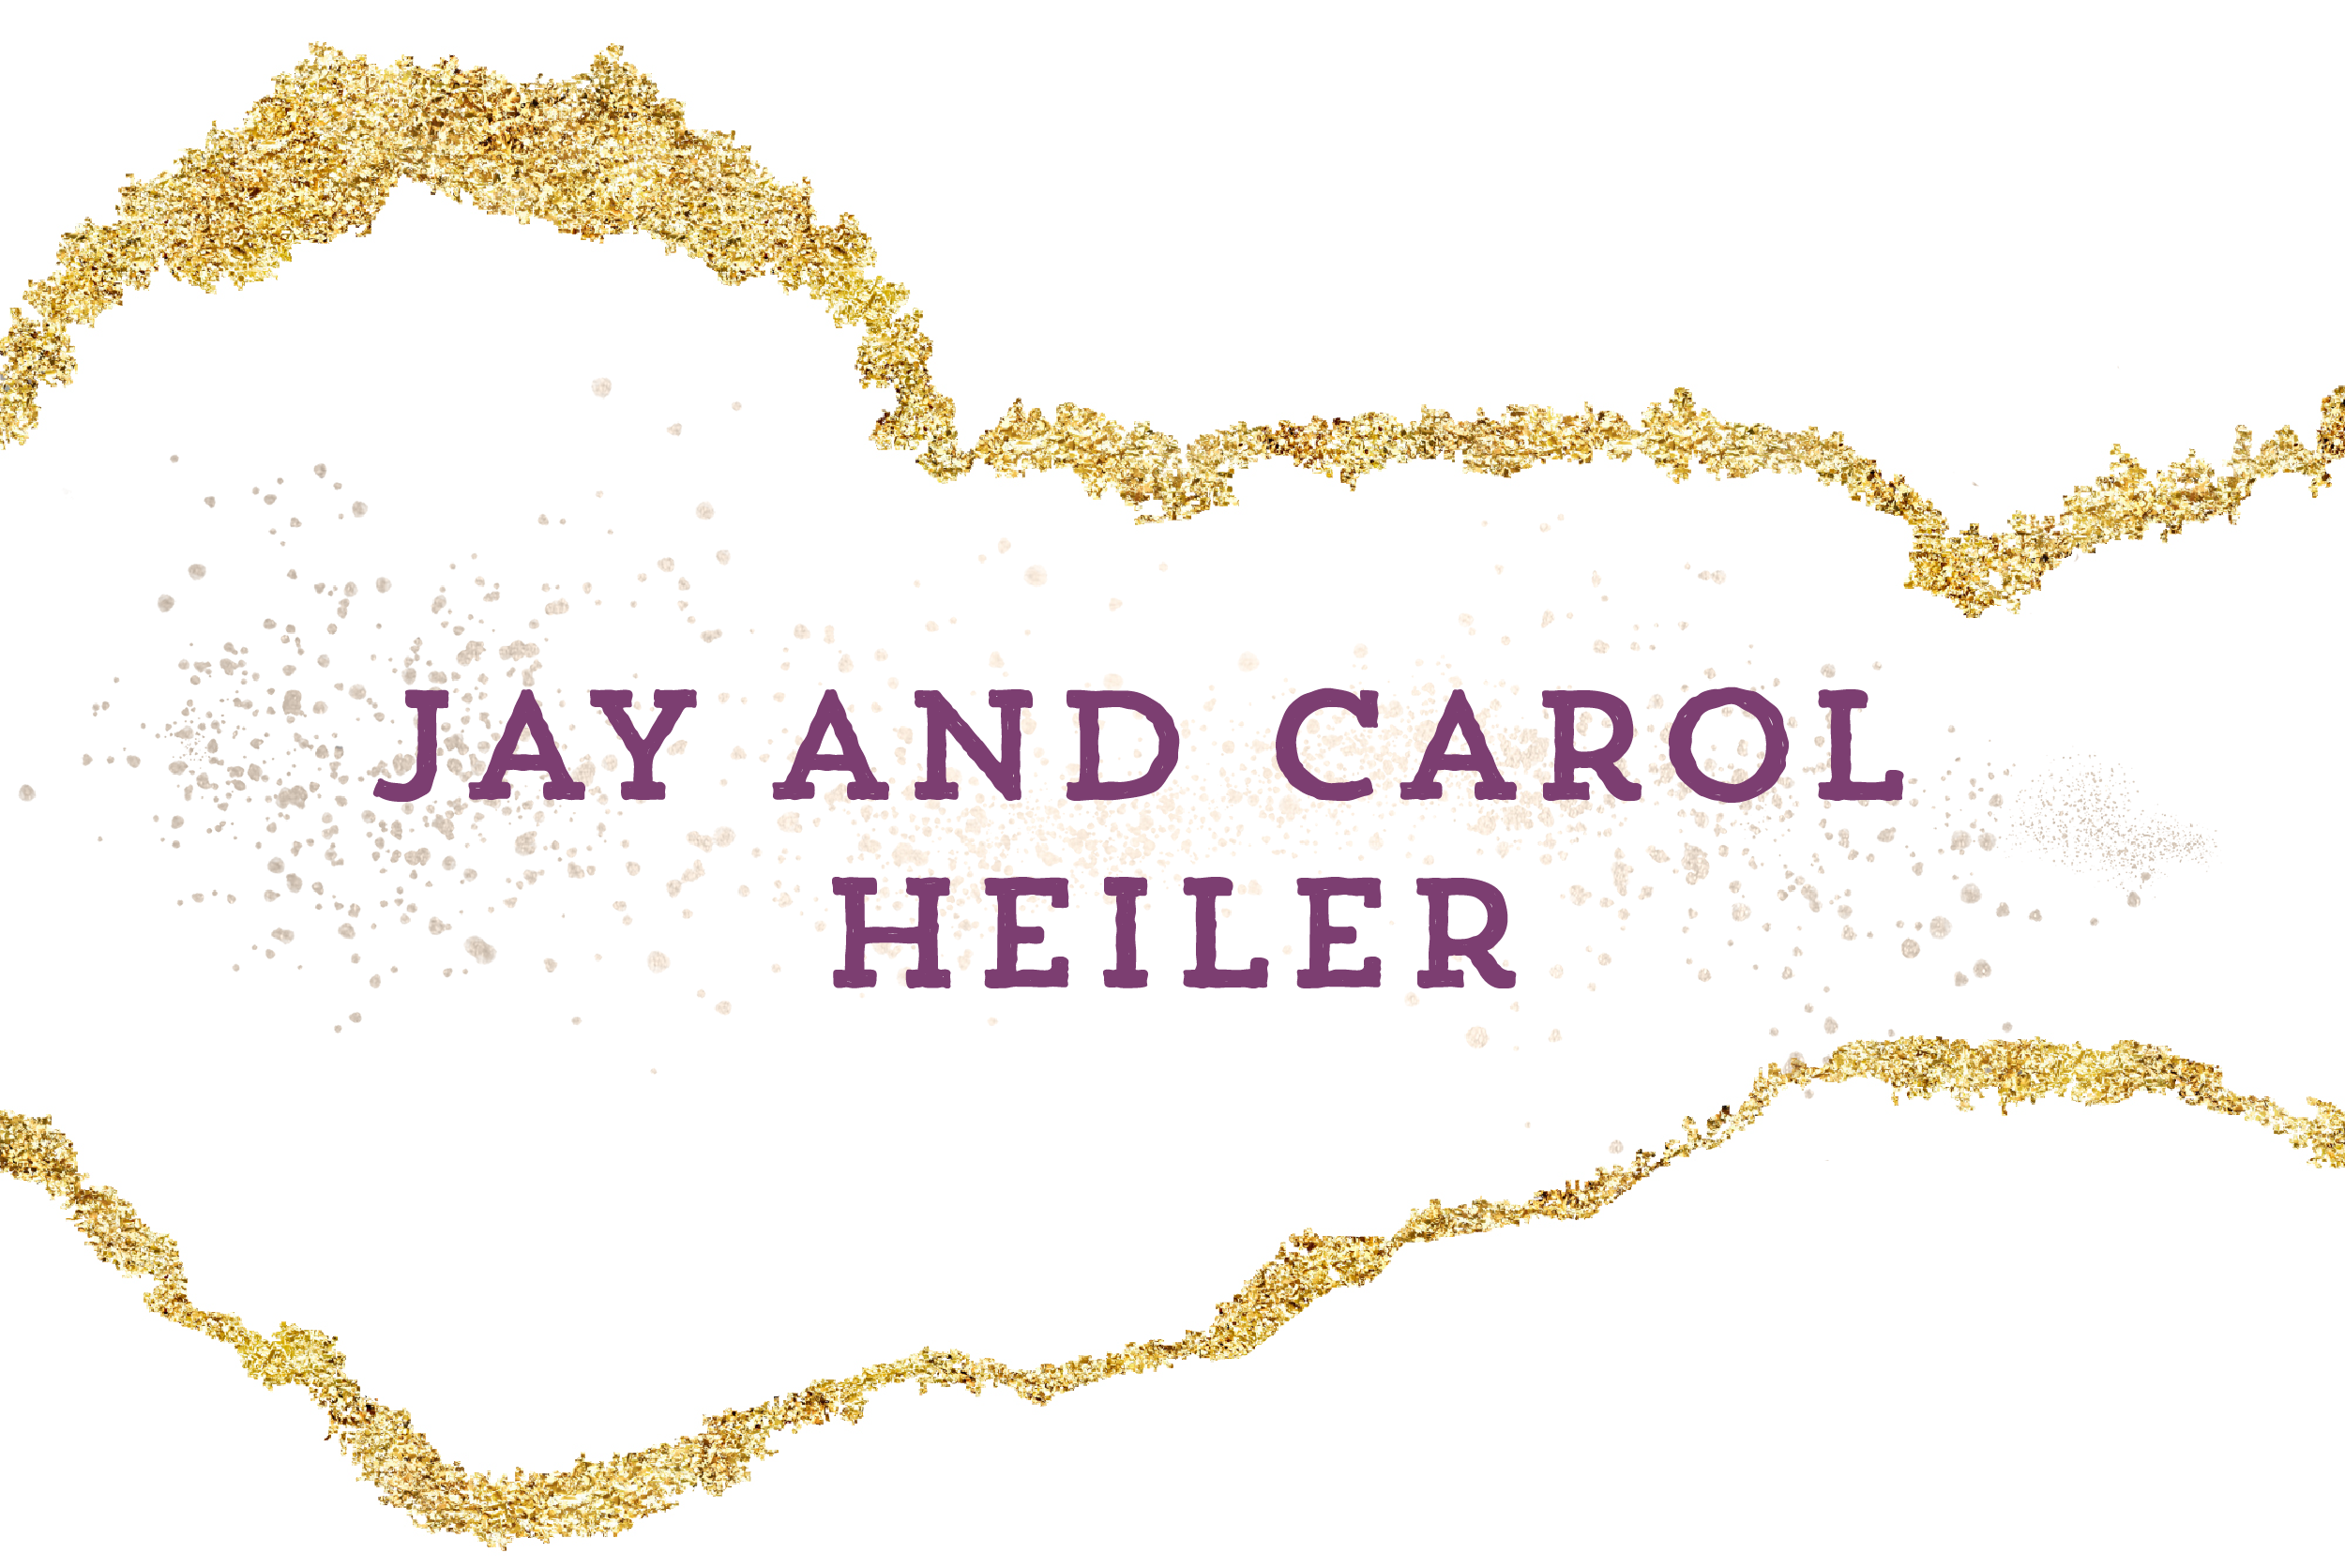 Jay and Carol Heiler name